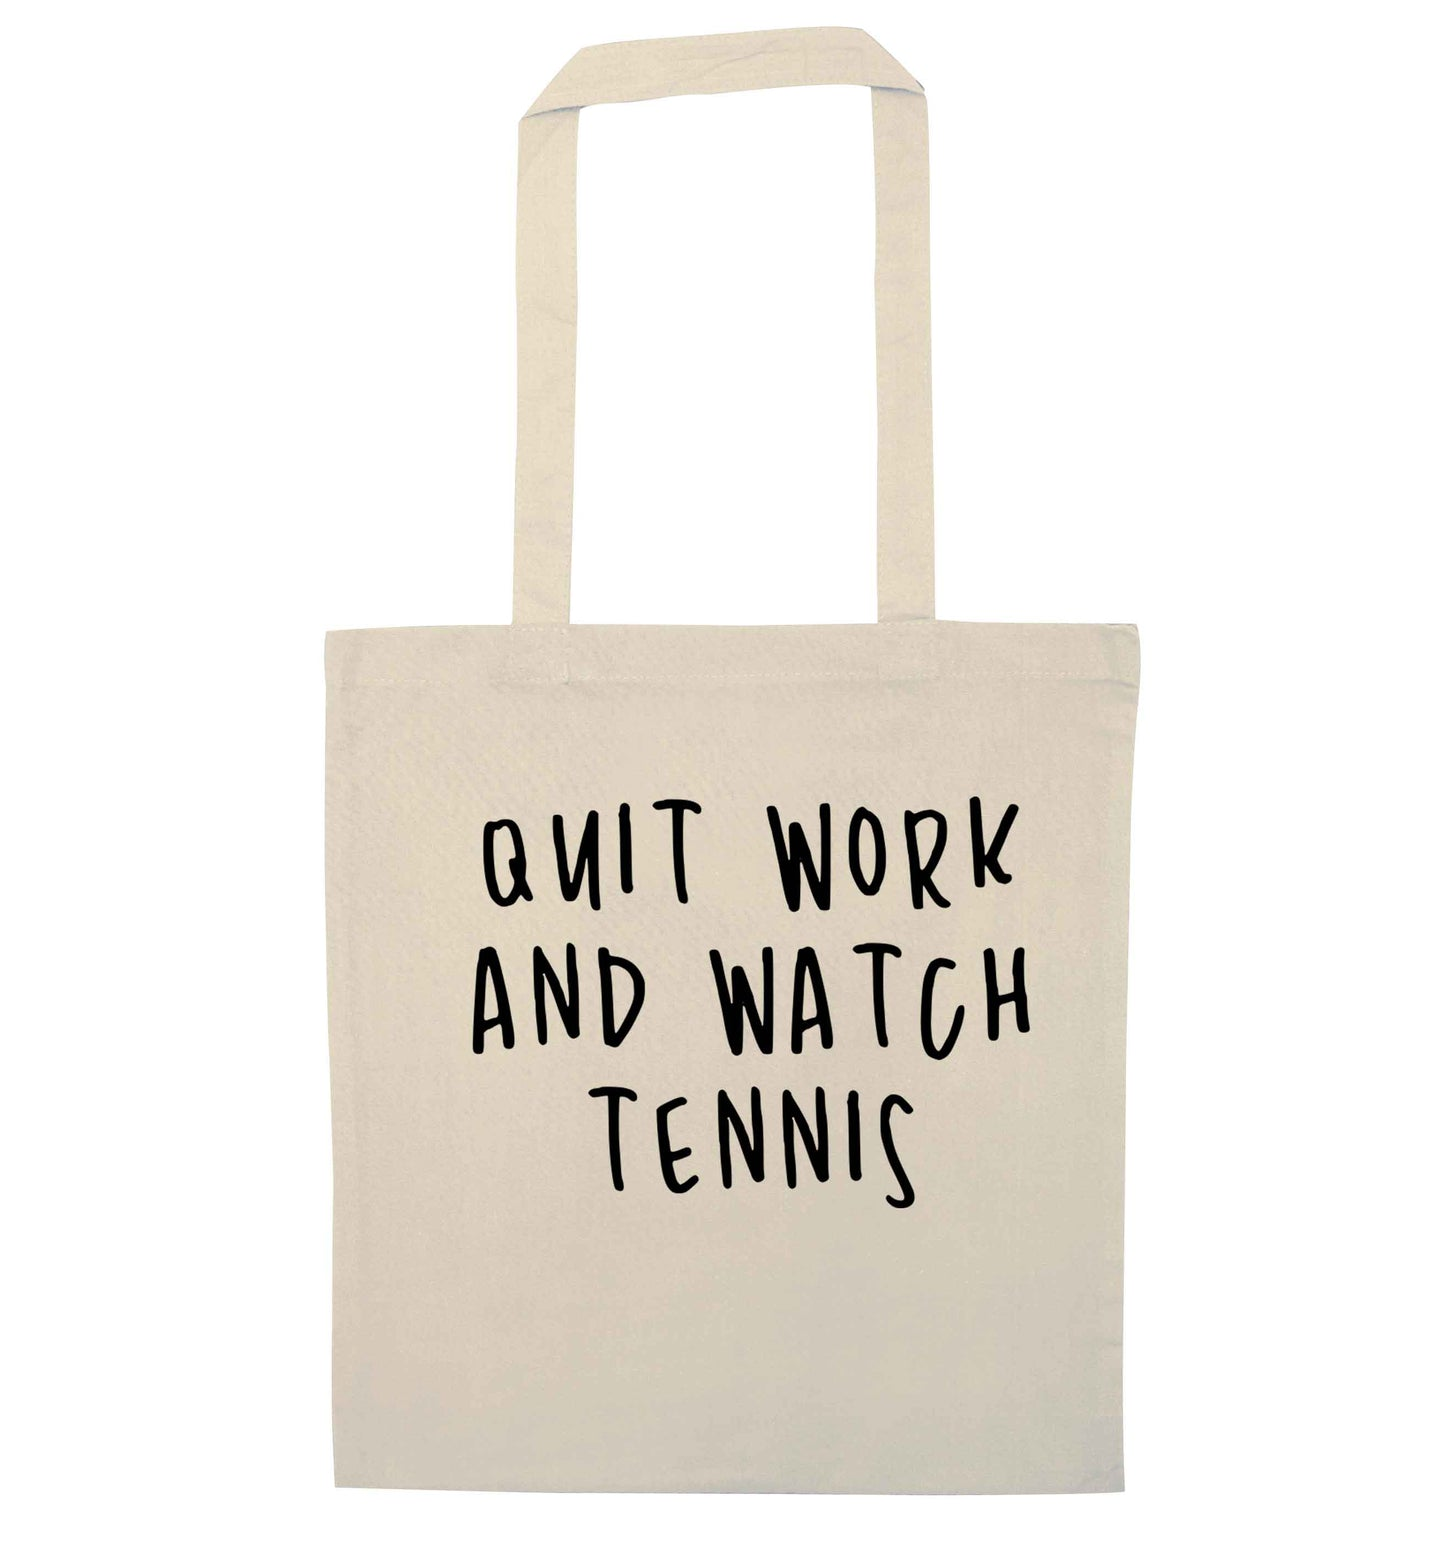 Quit work and watch tennis natural tote bag